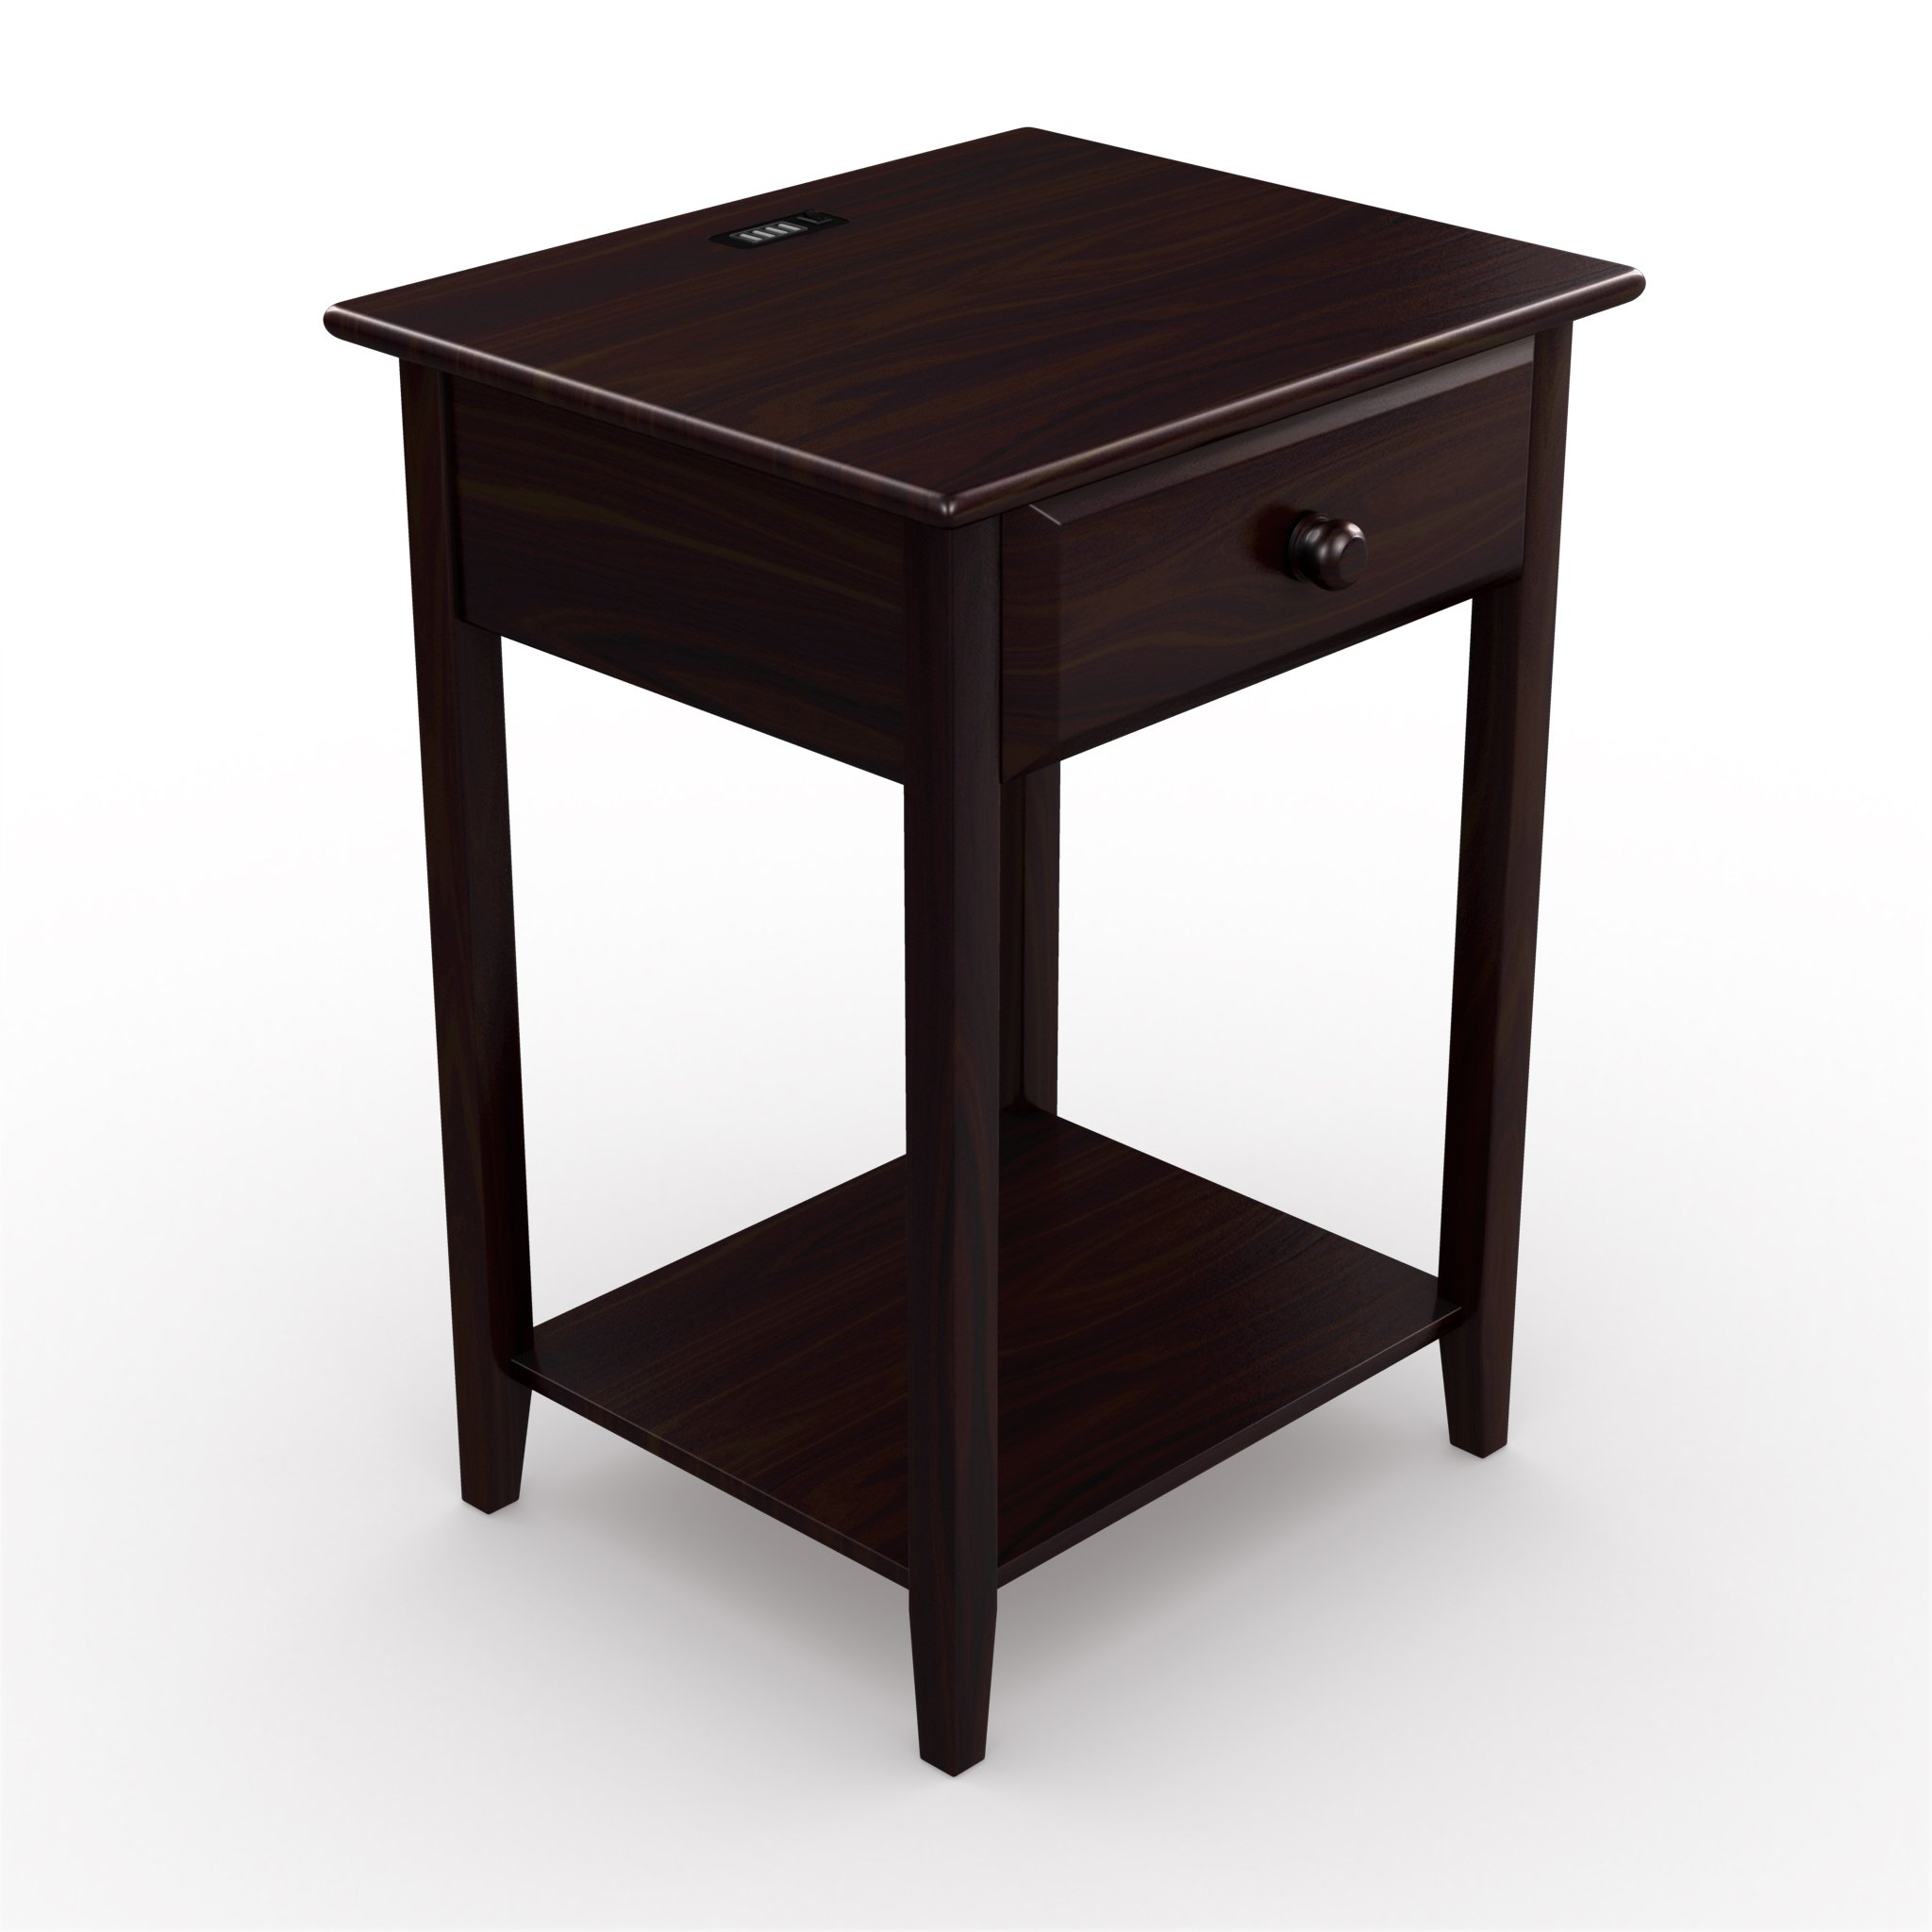 Stony-Edge Night Stand End Accent Table, with USB Port. Espresso. 17""